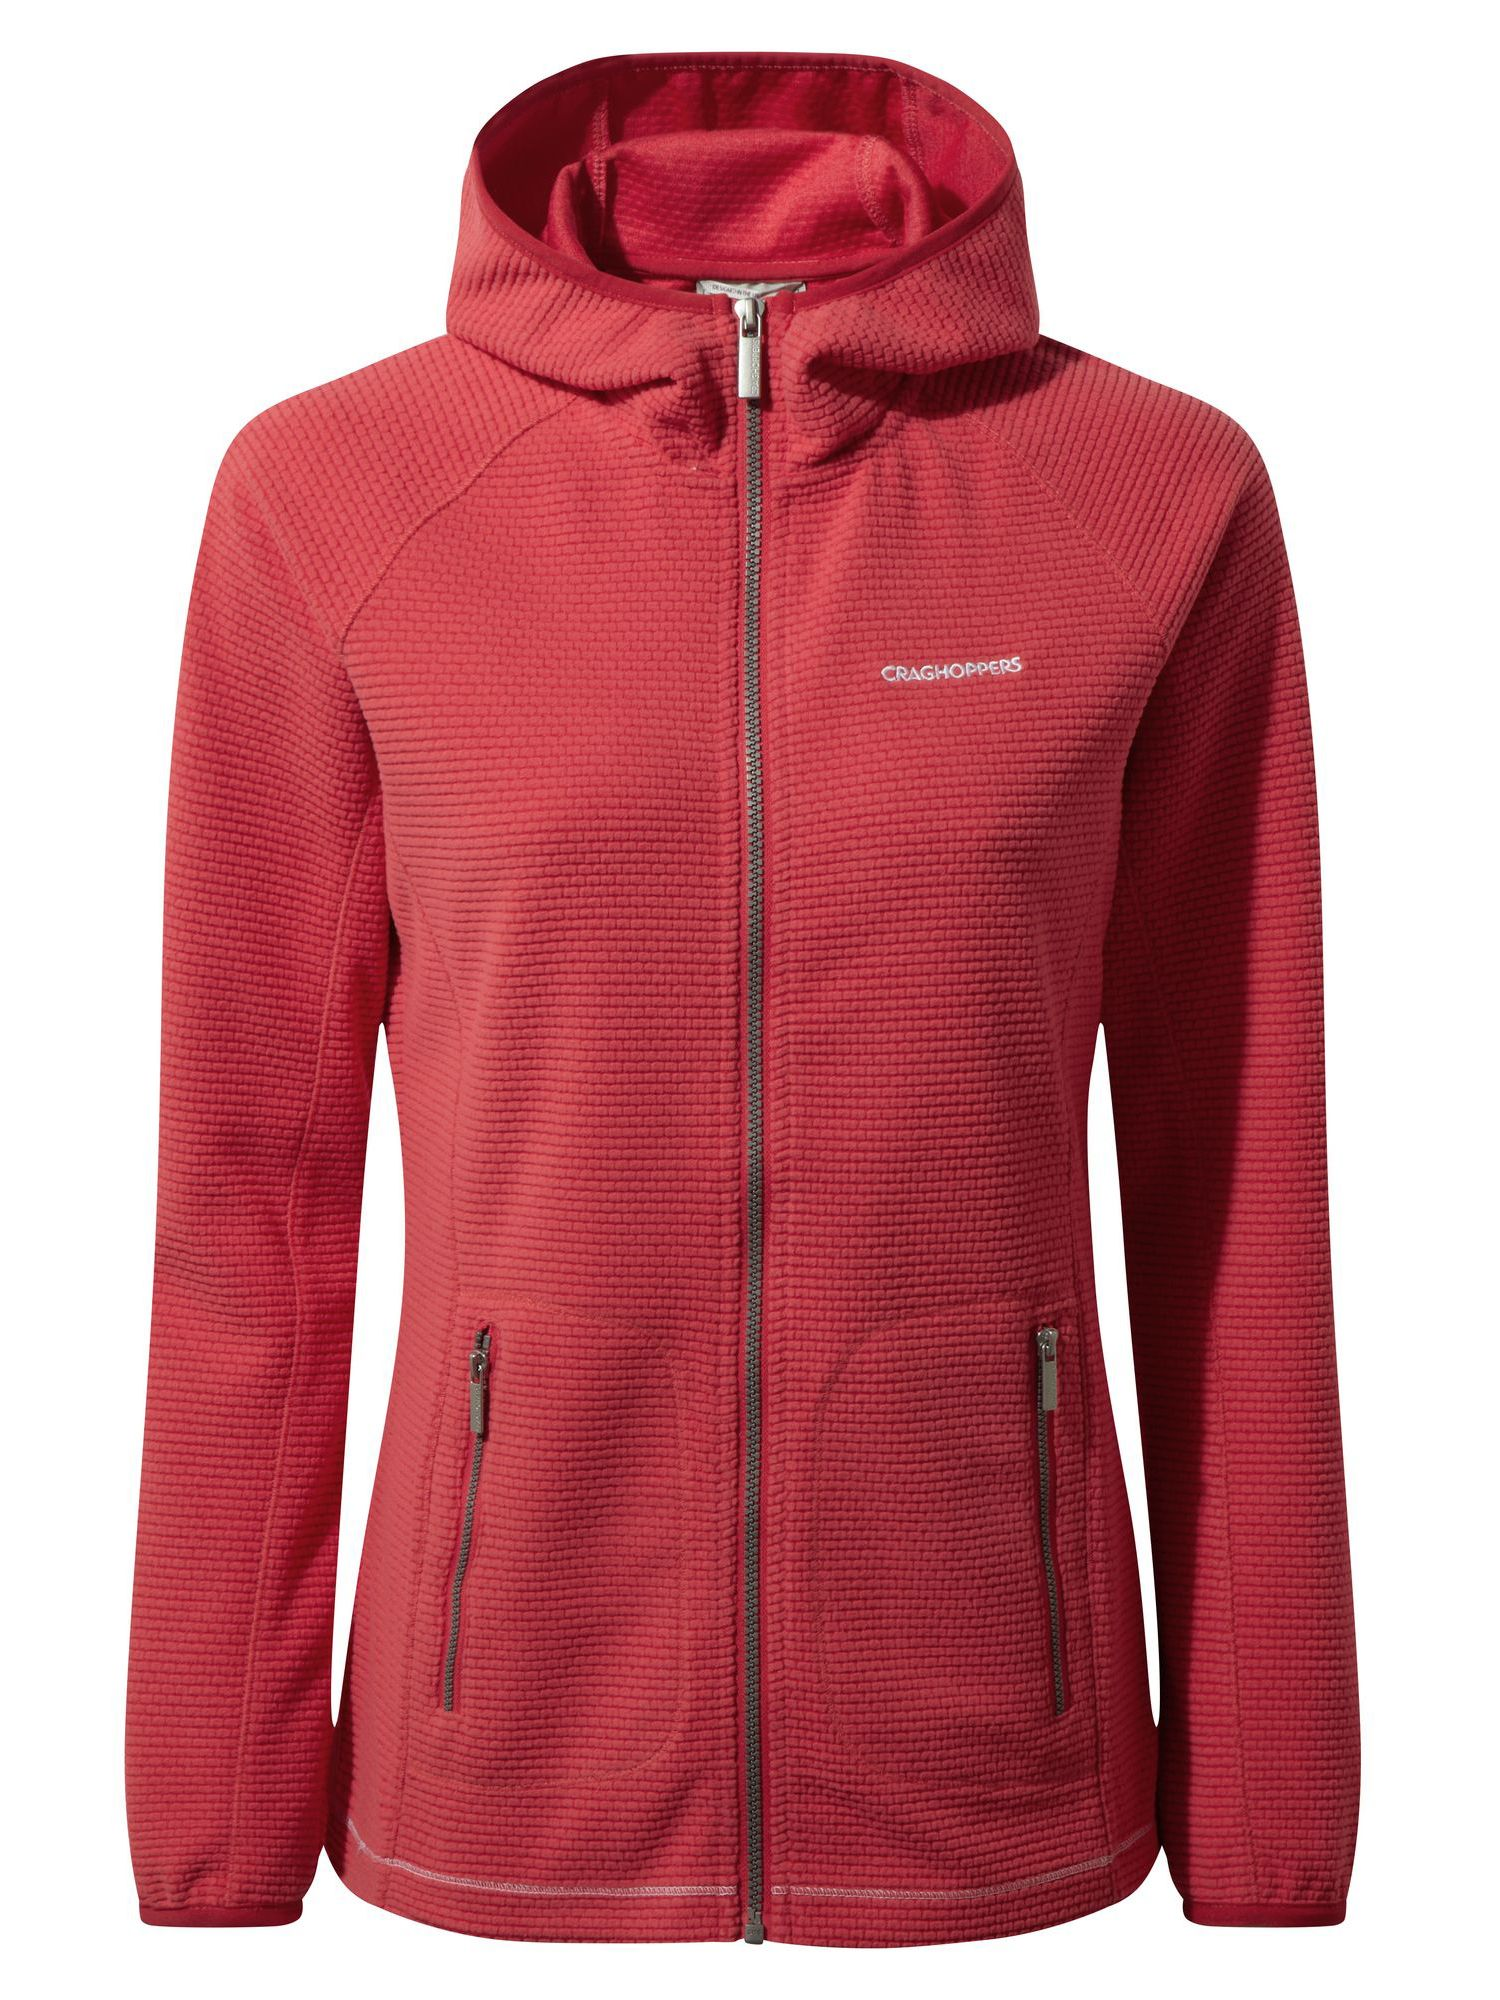 Craghoppers Hazelton Hooded Fleece Jacket, Rose